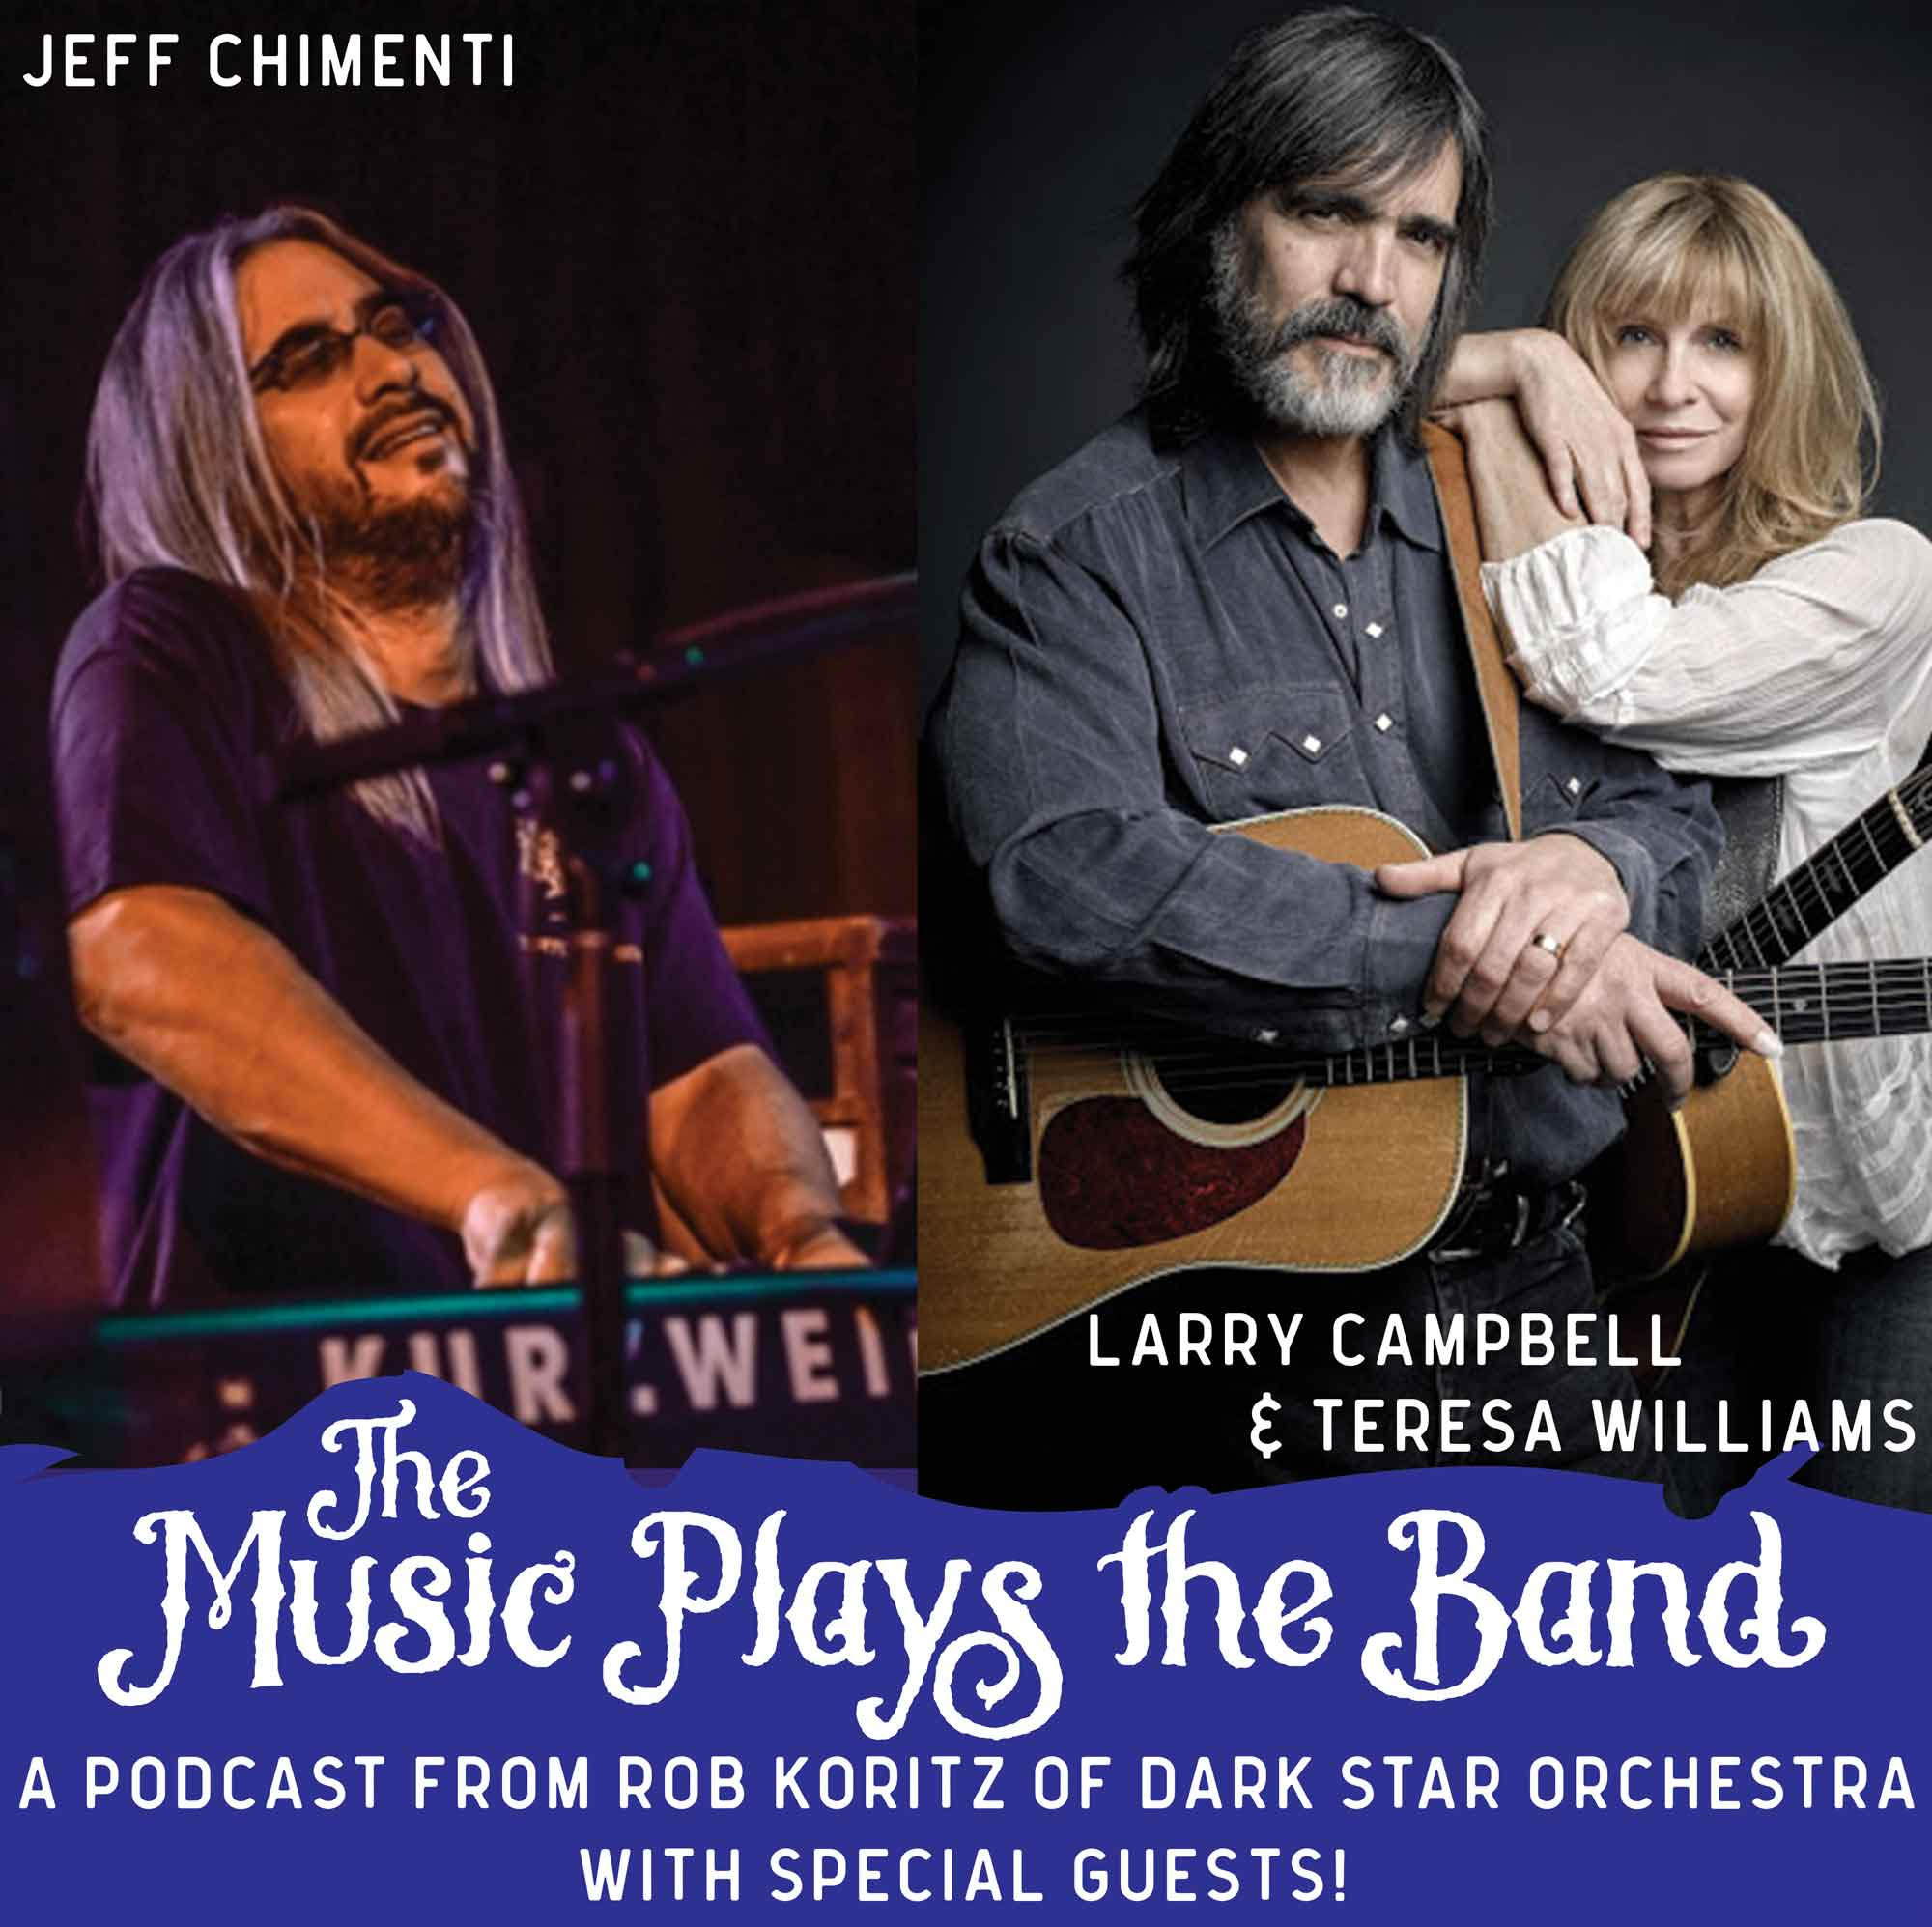 'The Music Plays the Band' Podcast From Dark Star Orchestra Drummer Rob Koritz Welcomes Very Special Guests Jeff Chimenti, Larry Campbell & Teresa Williams